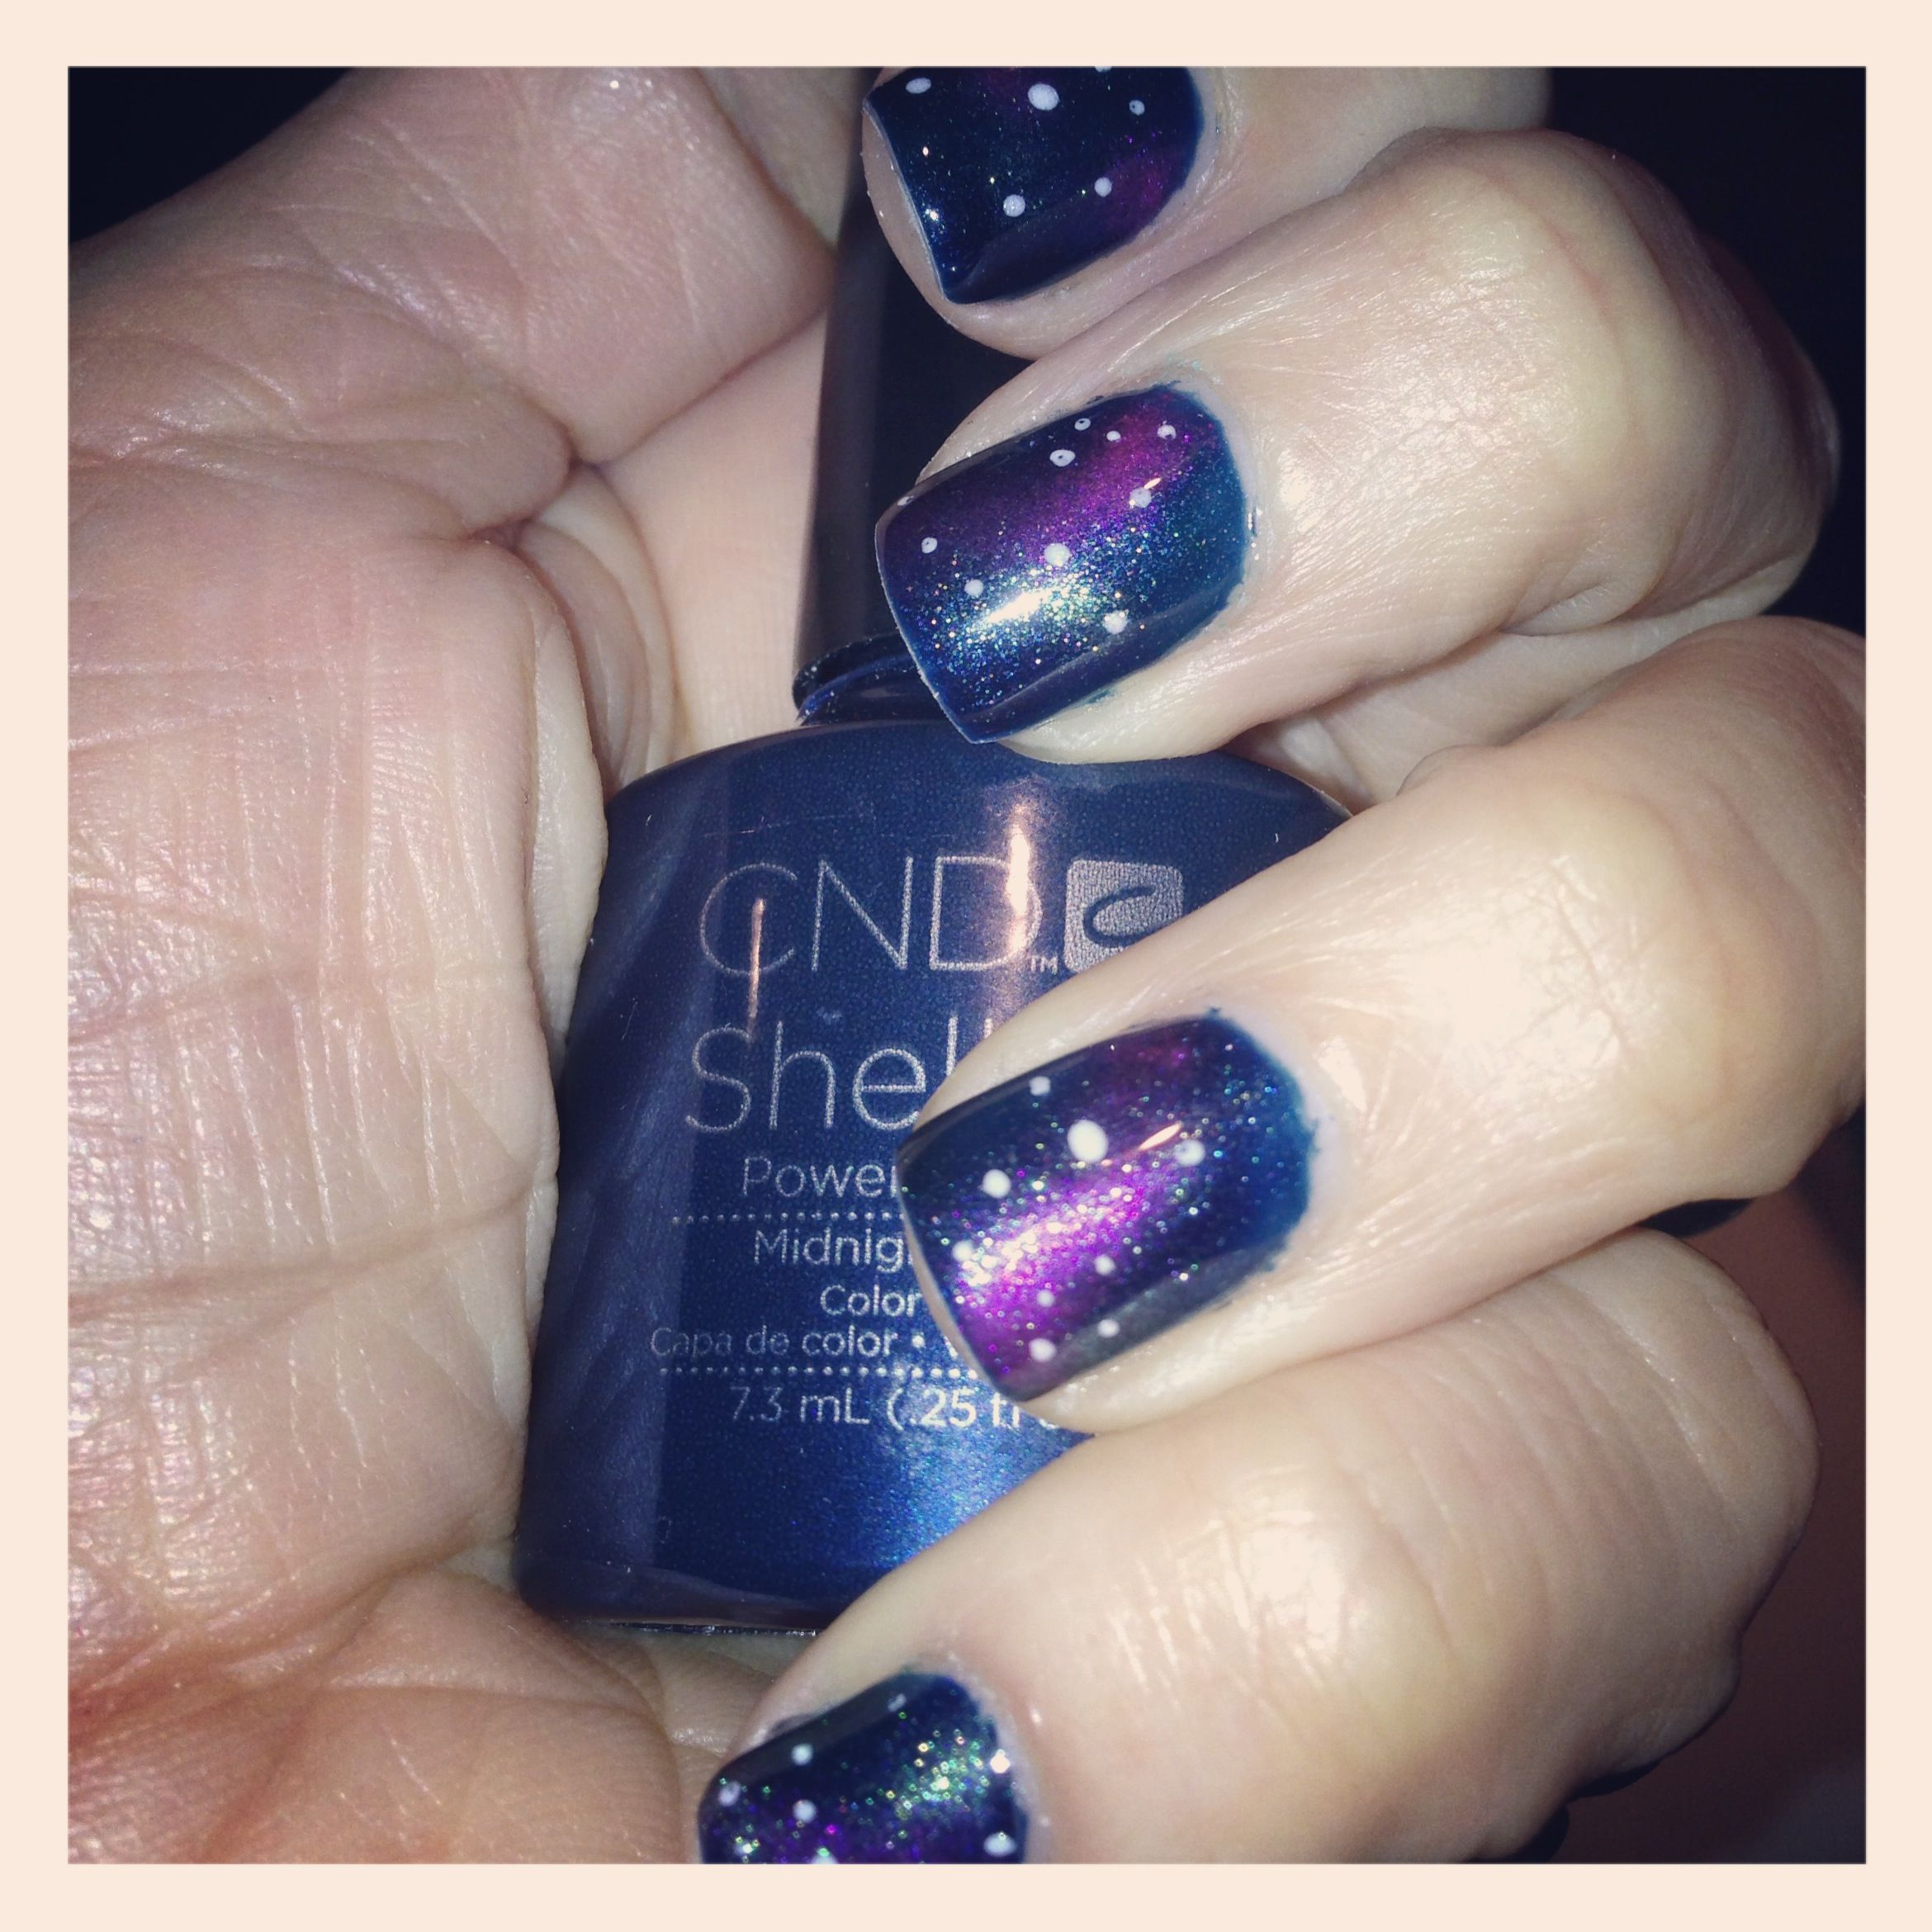 Galaxy nail art design effect done with cnd shellac and additives galaxy nail art design effect done with cnd shellac and additives by me prinsesfo Images